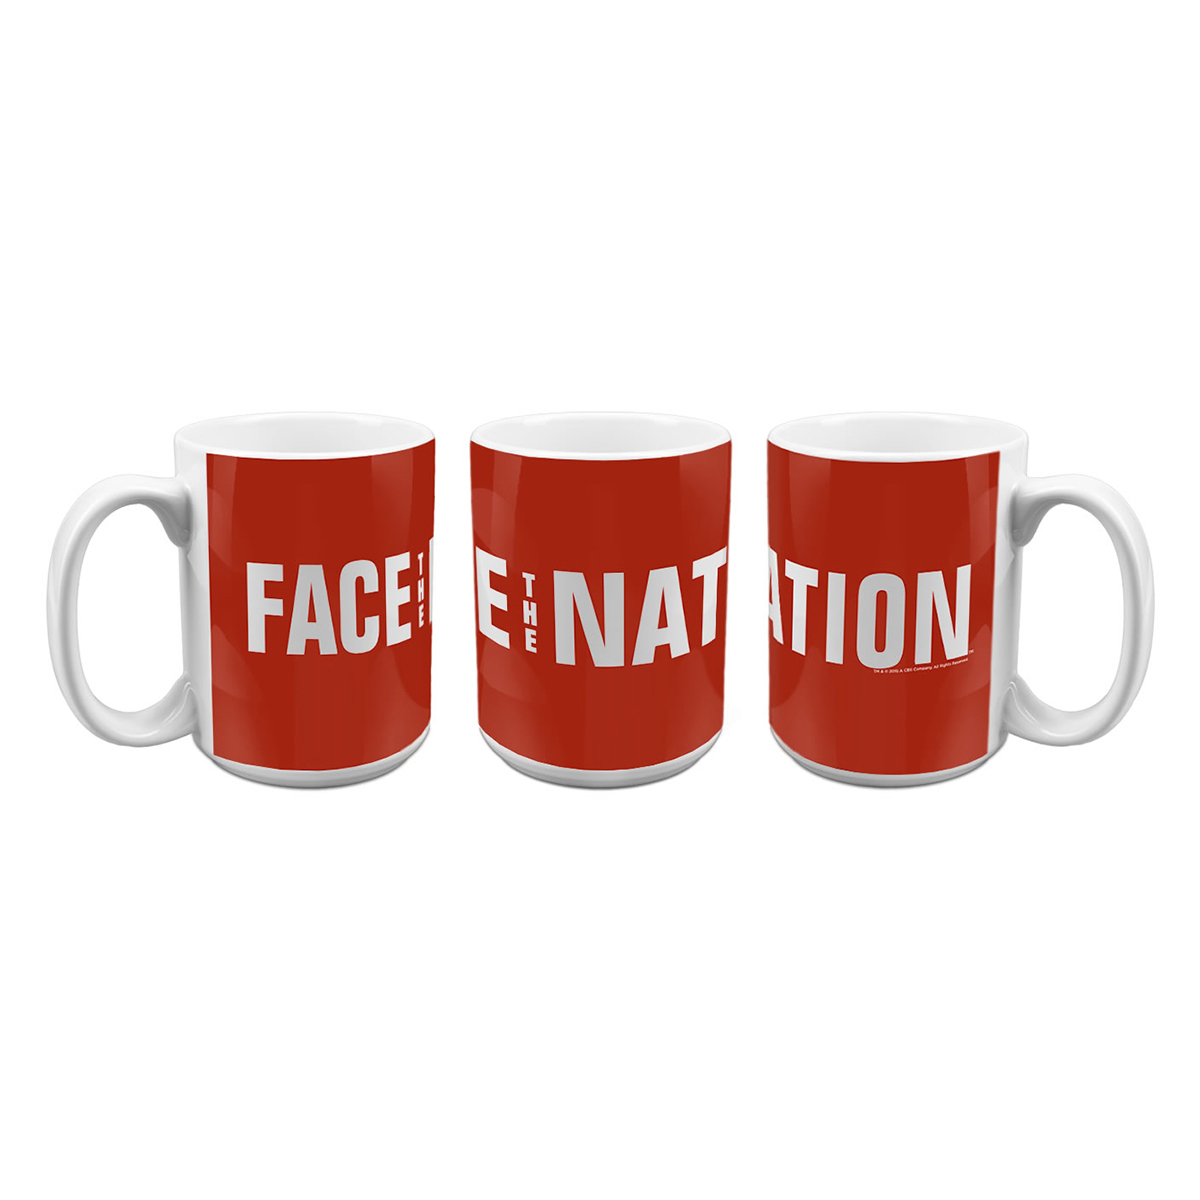 Face the Nation 15oz Mug